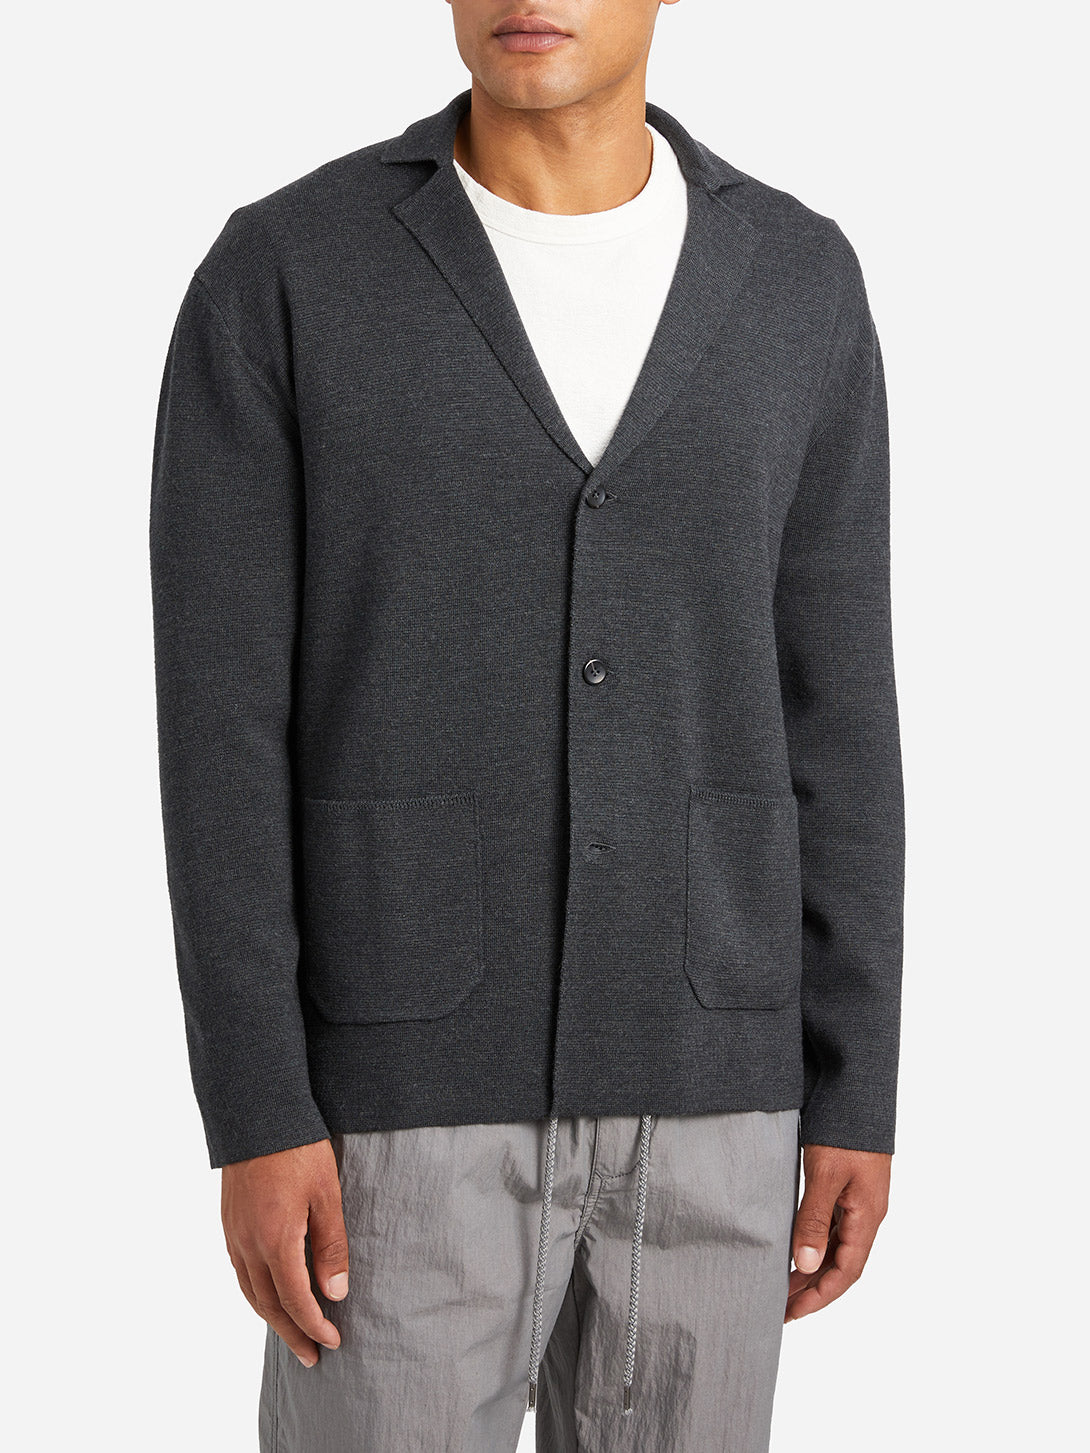 CHARCOAL GREY sweaters for men cole cardigan grey ons clothing